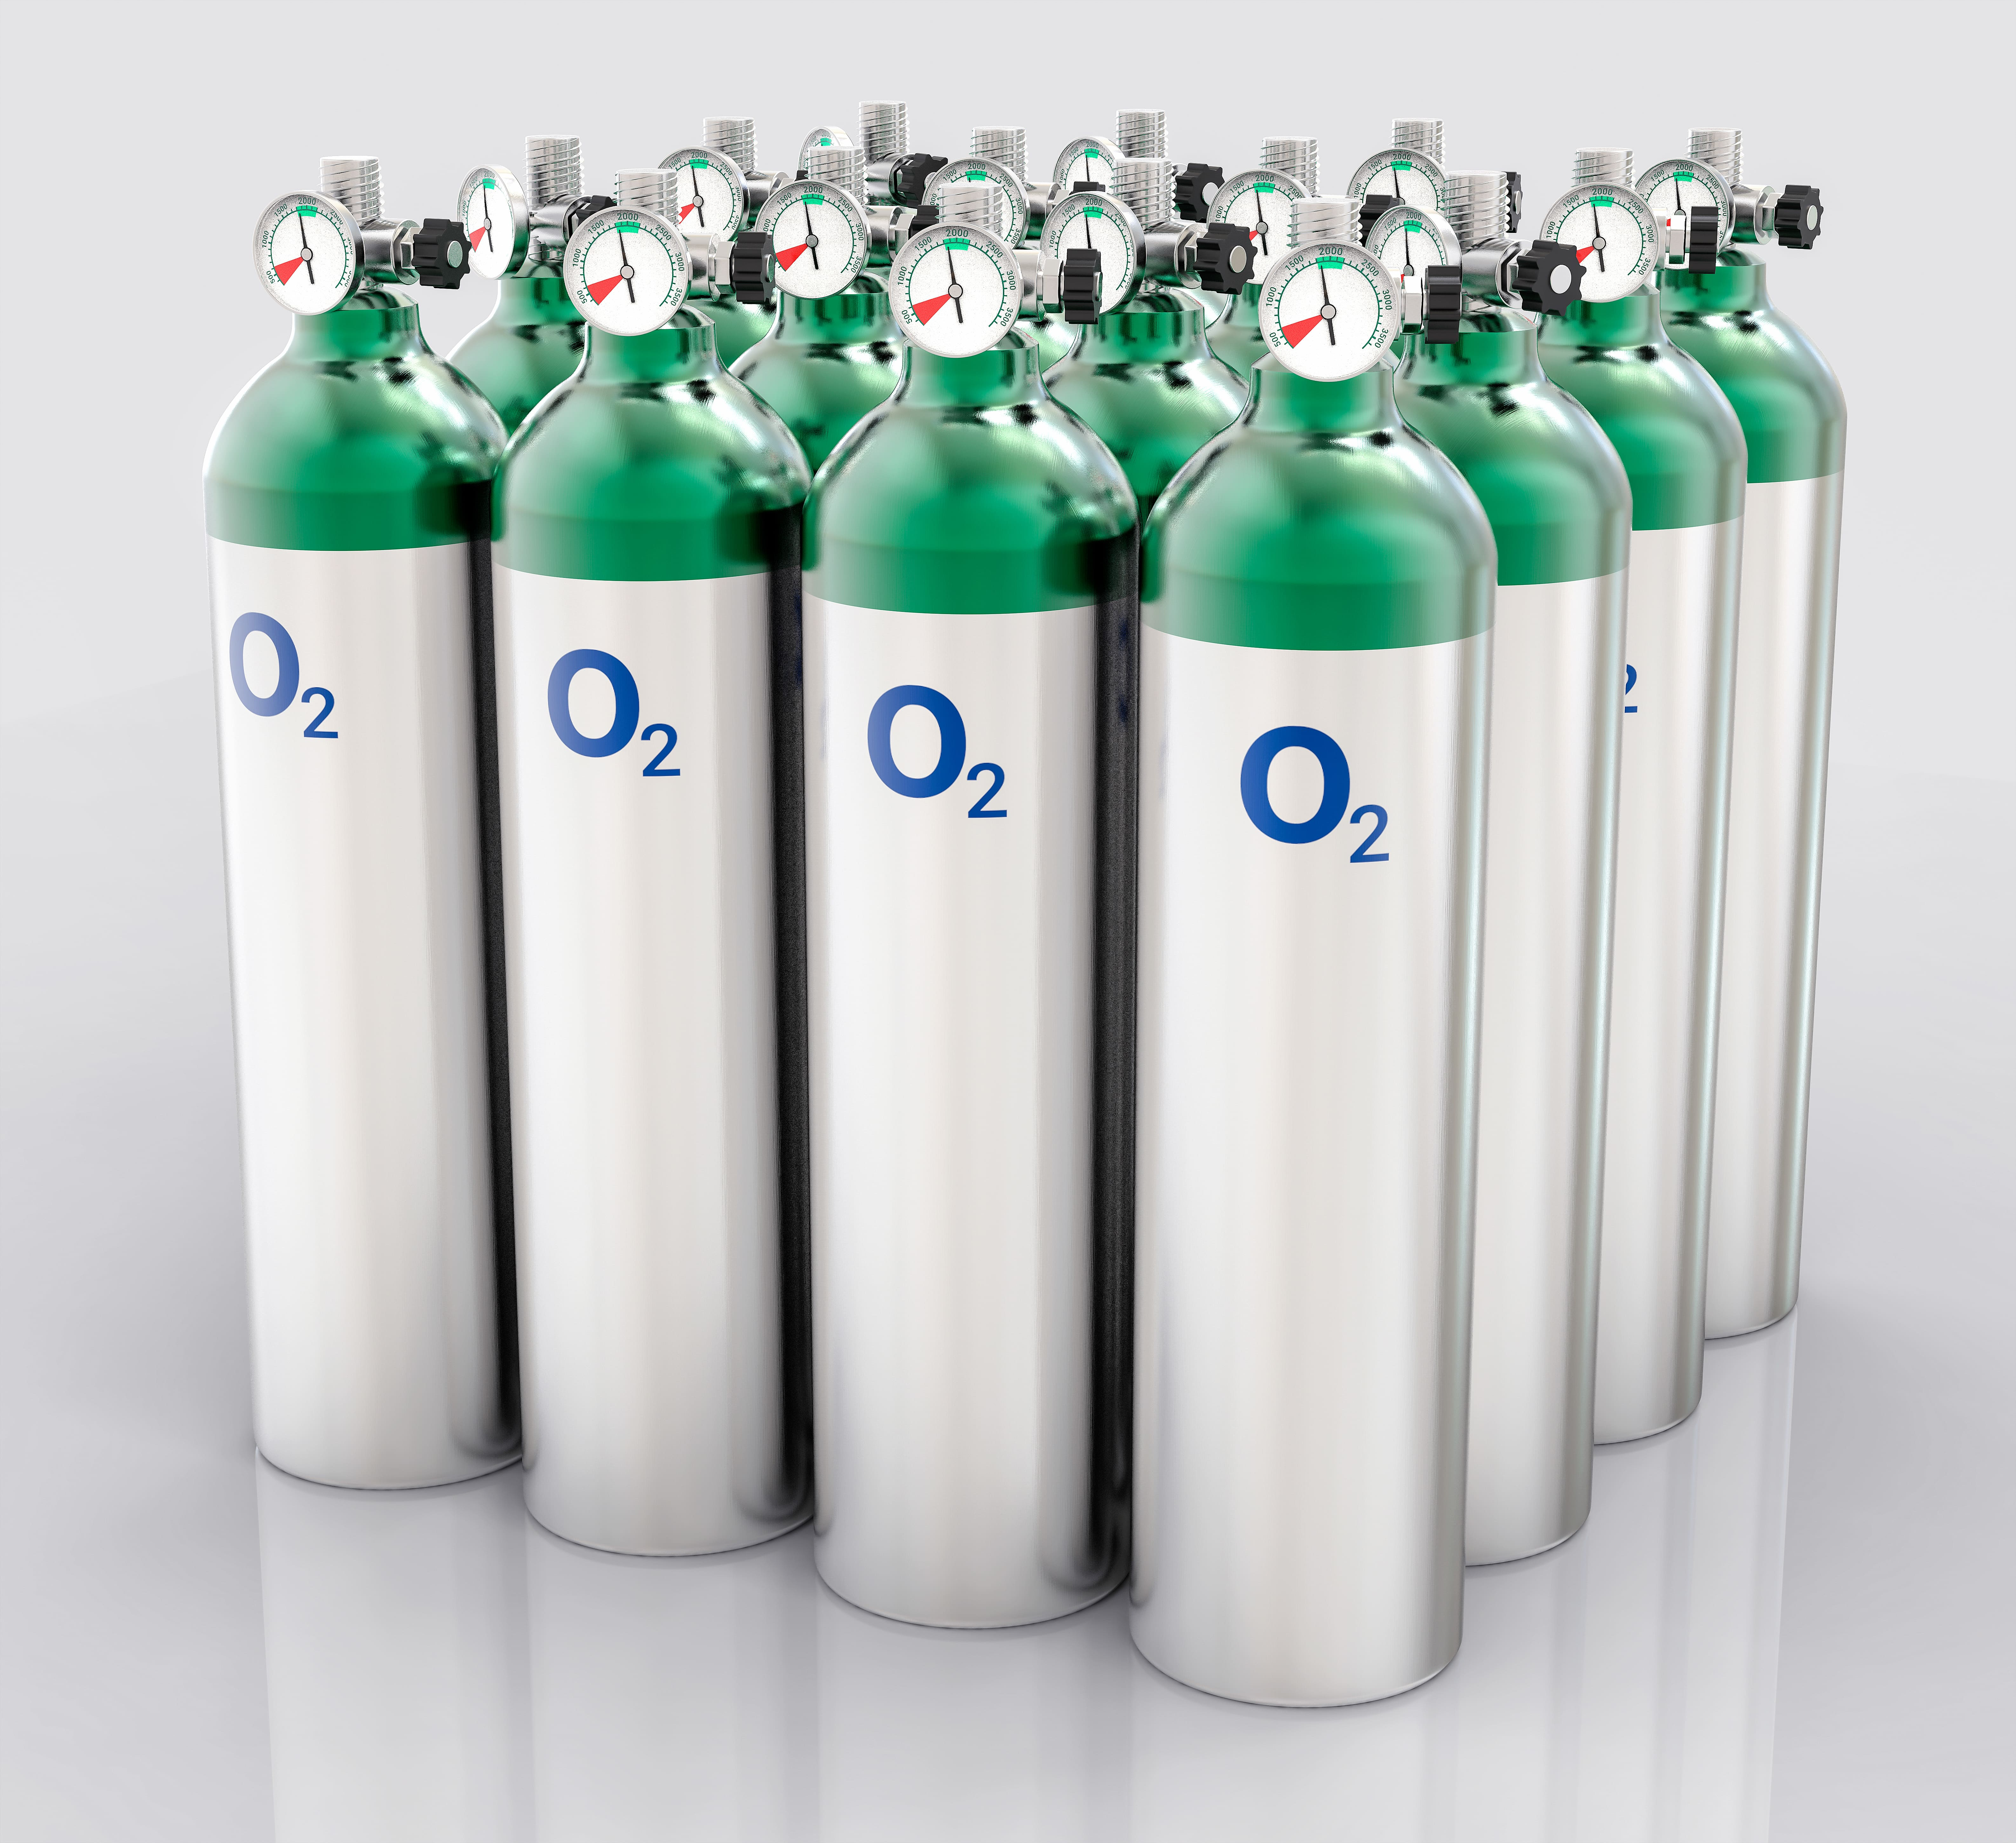 Set of oxygen tanks